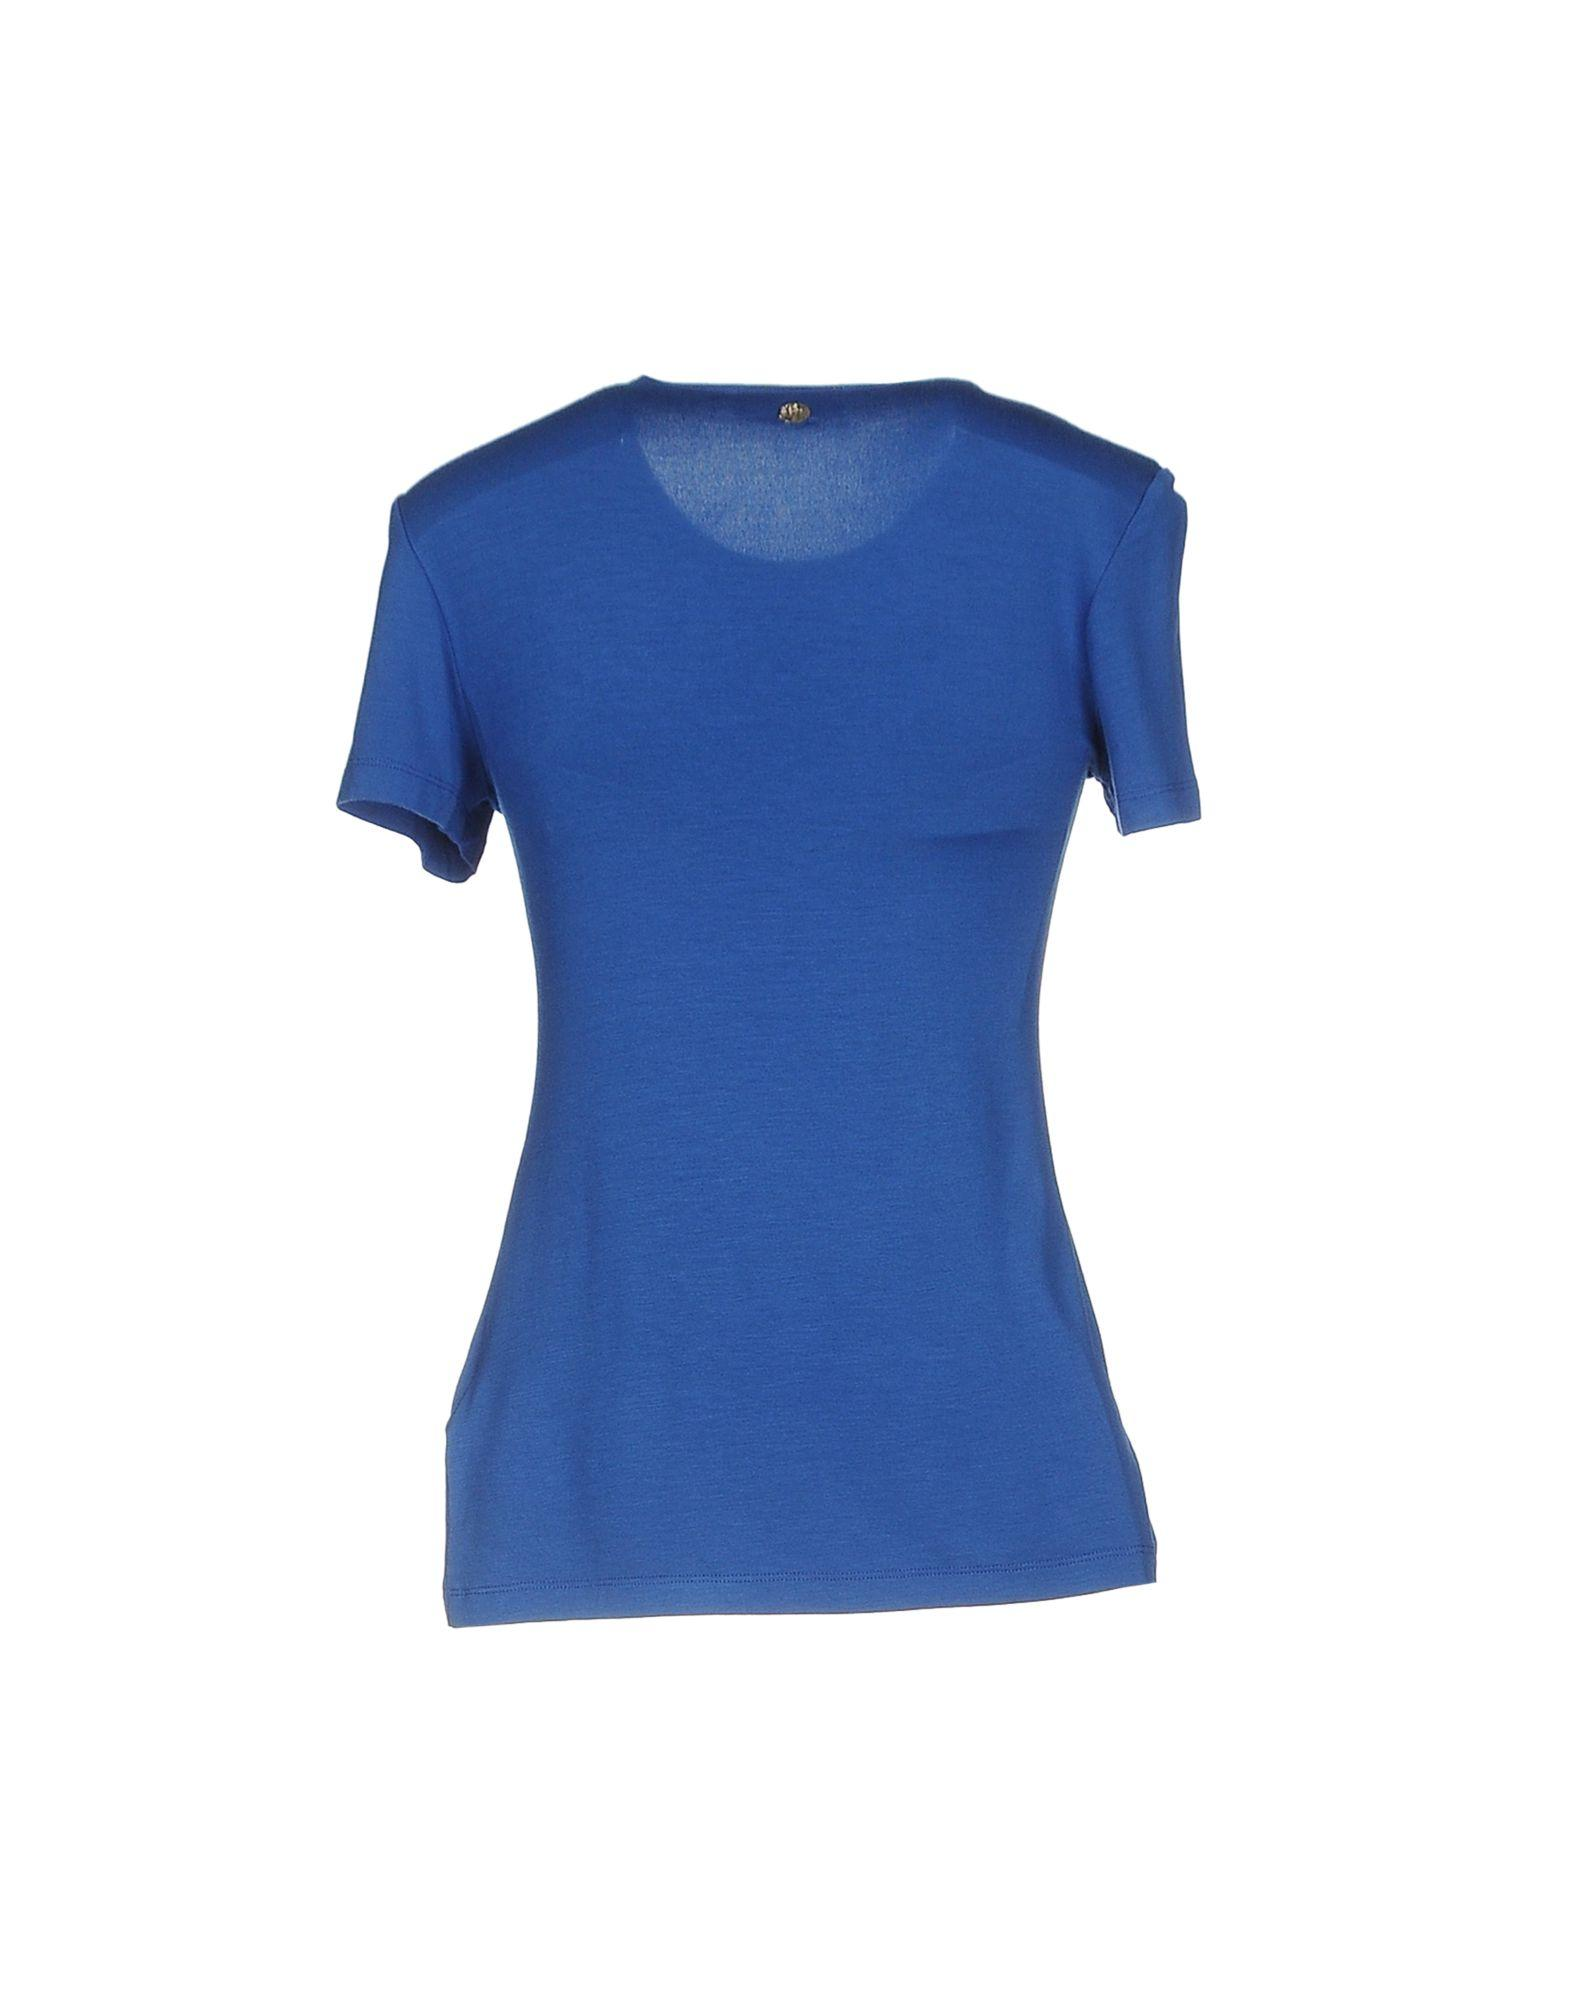 Lyst versace t shirt in blue for Blue and white versace shirt